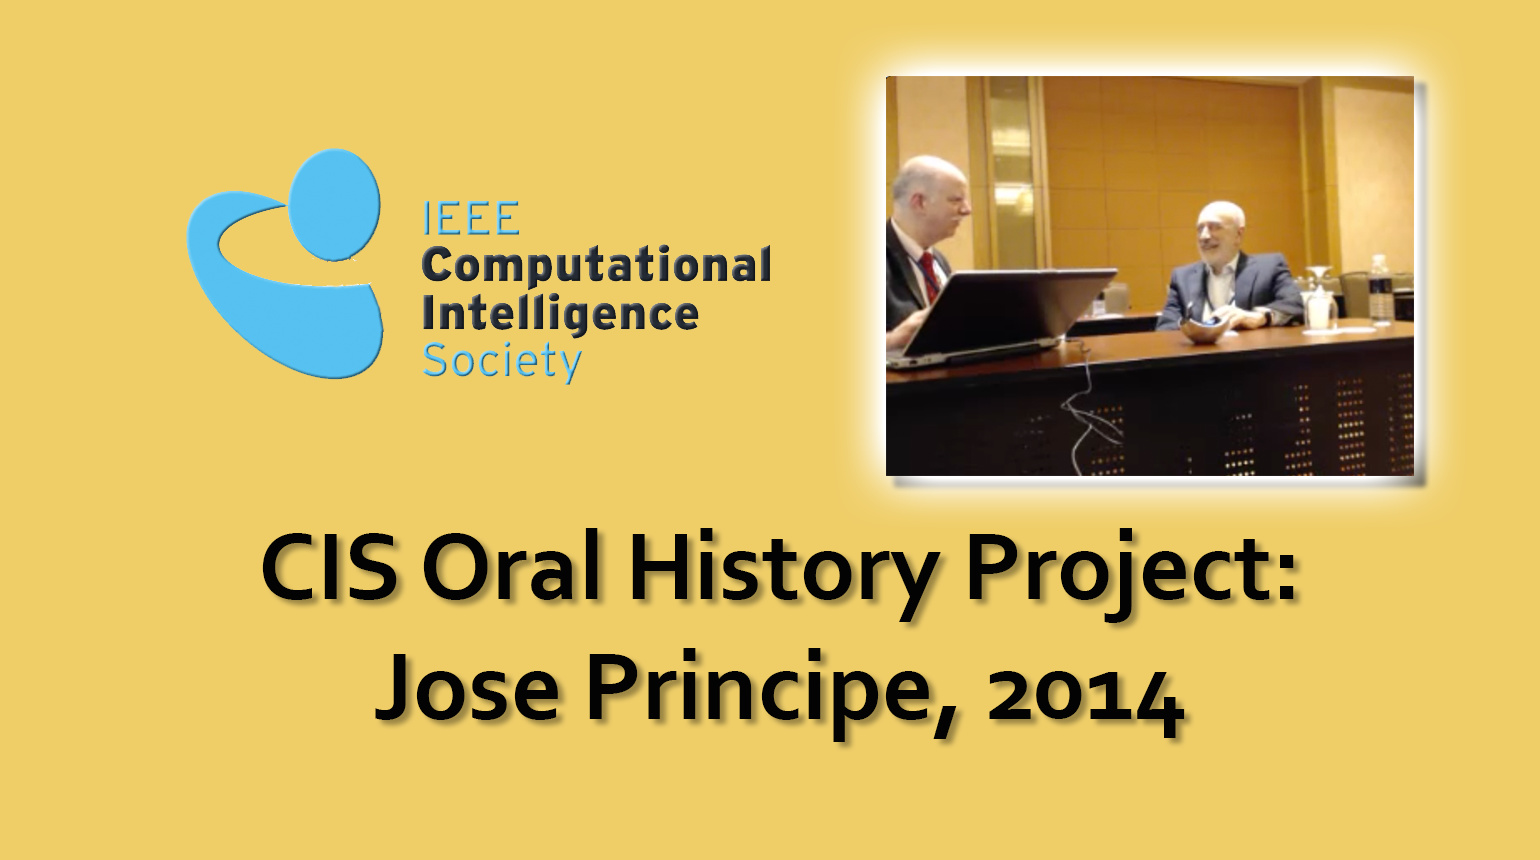 Interview with Jose Principe, 2014: CIS Oral History Project